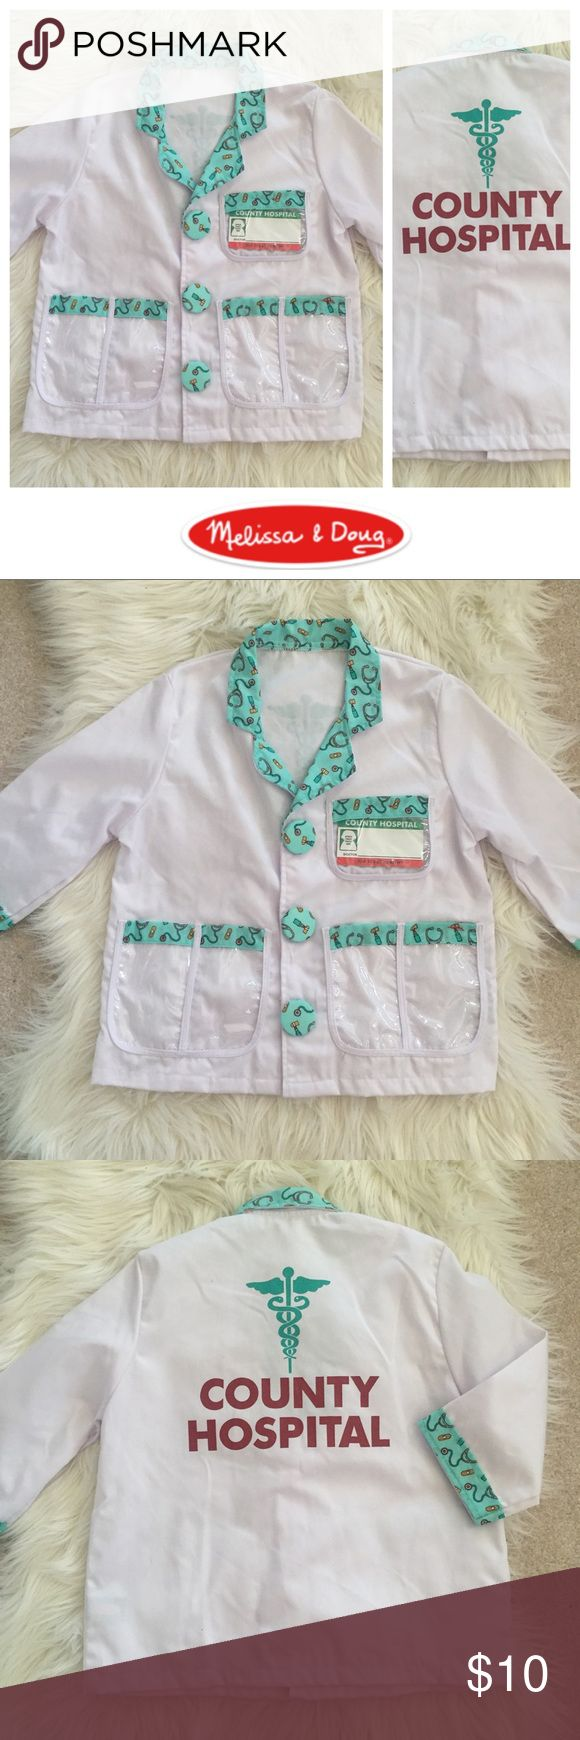 """Doctor's Role-Play Jacket (Age 3-6) Adorable Melissa and Doug doctor's white coat for dress up play -- clean name tag. """"County Hospital"""" on the back. Tag says ages 3-6. Bundle to save even more! Hope you enjoy 😘 Obviously unisex but I picked girl :) NOT Mini Boden -- just for visibility! Mini Boden Accessories"""